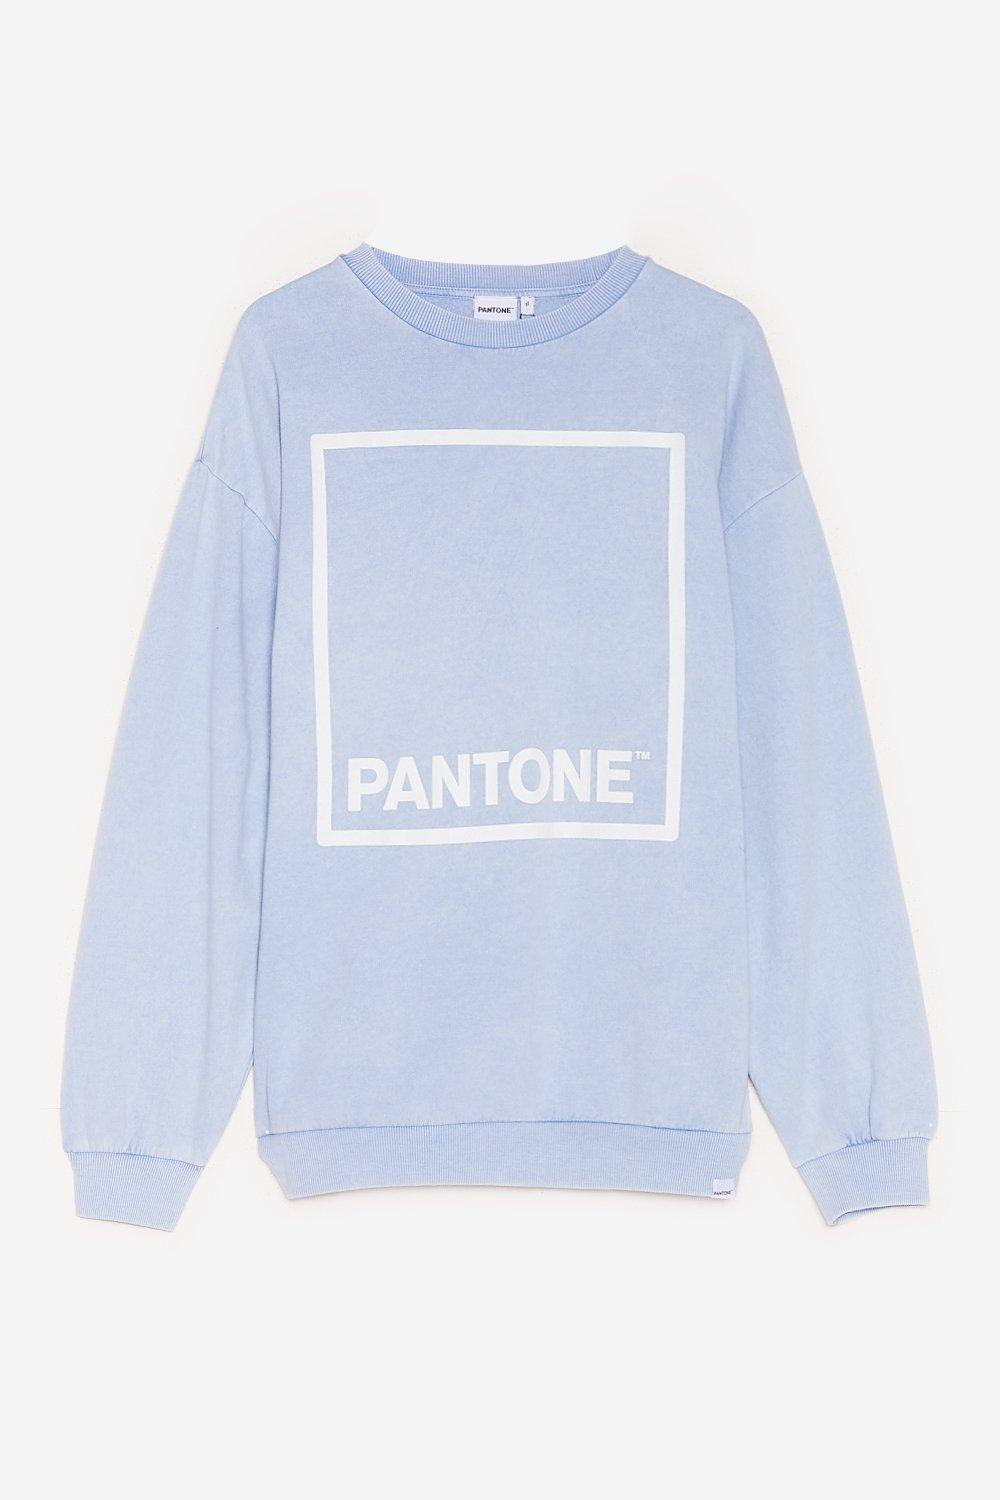 Paint a Picture Pantone Oversized Graphic Sweatshirt 17